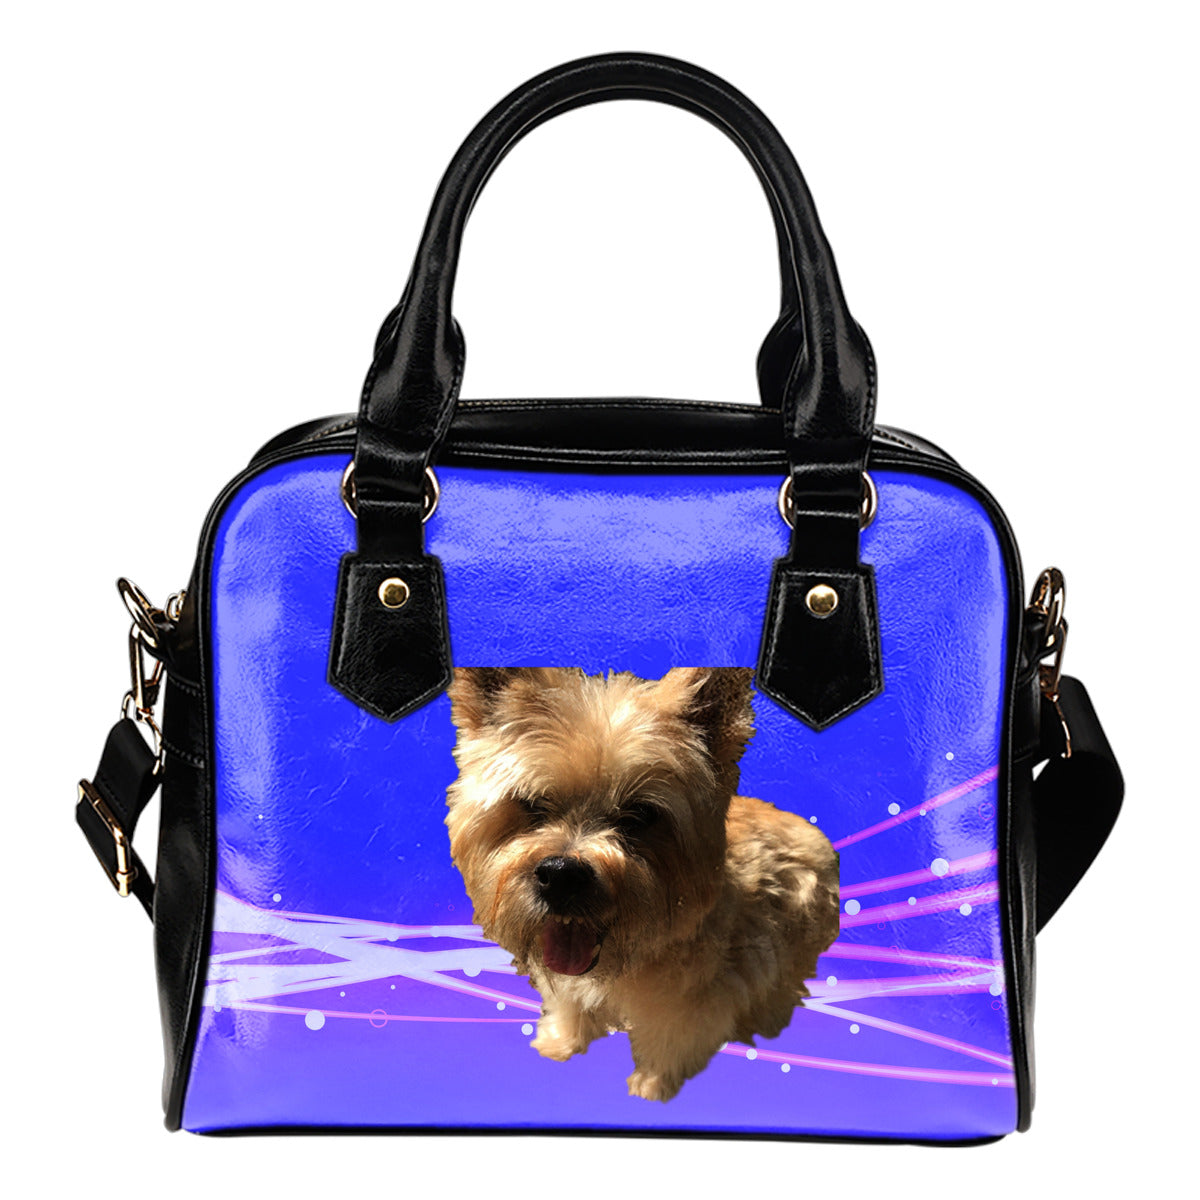 Norwich Terrier Shoulder Bag